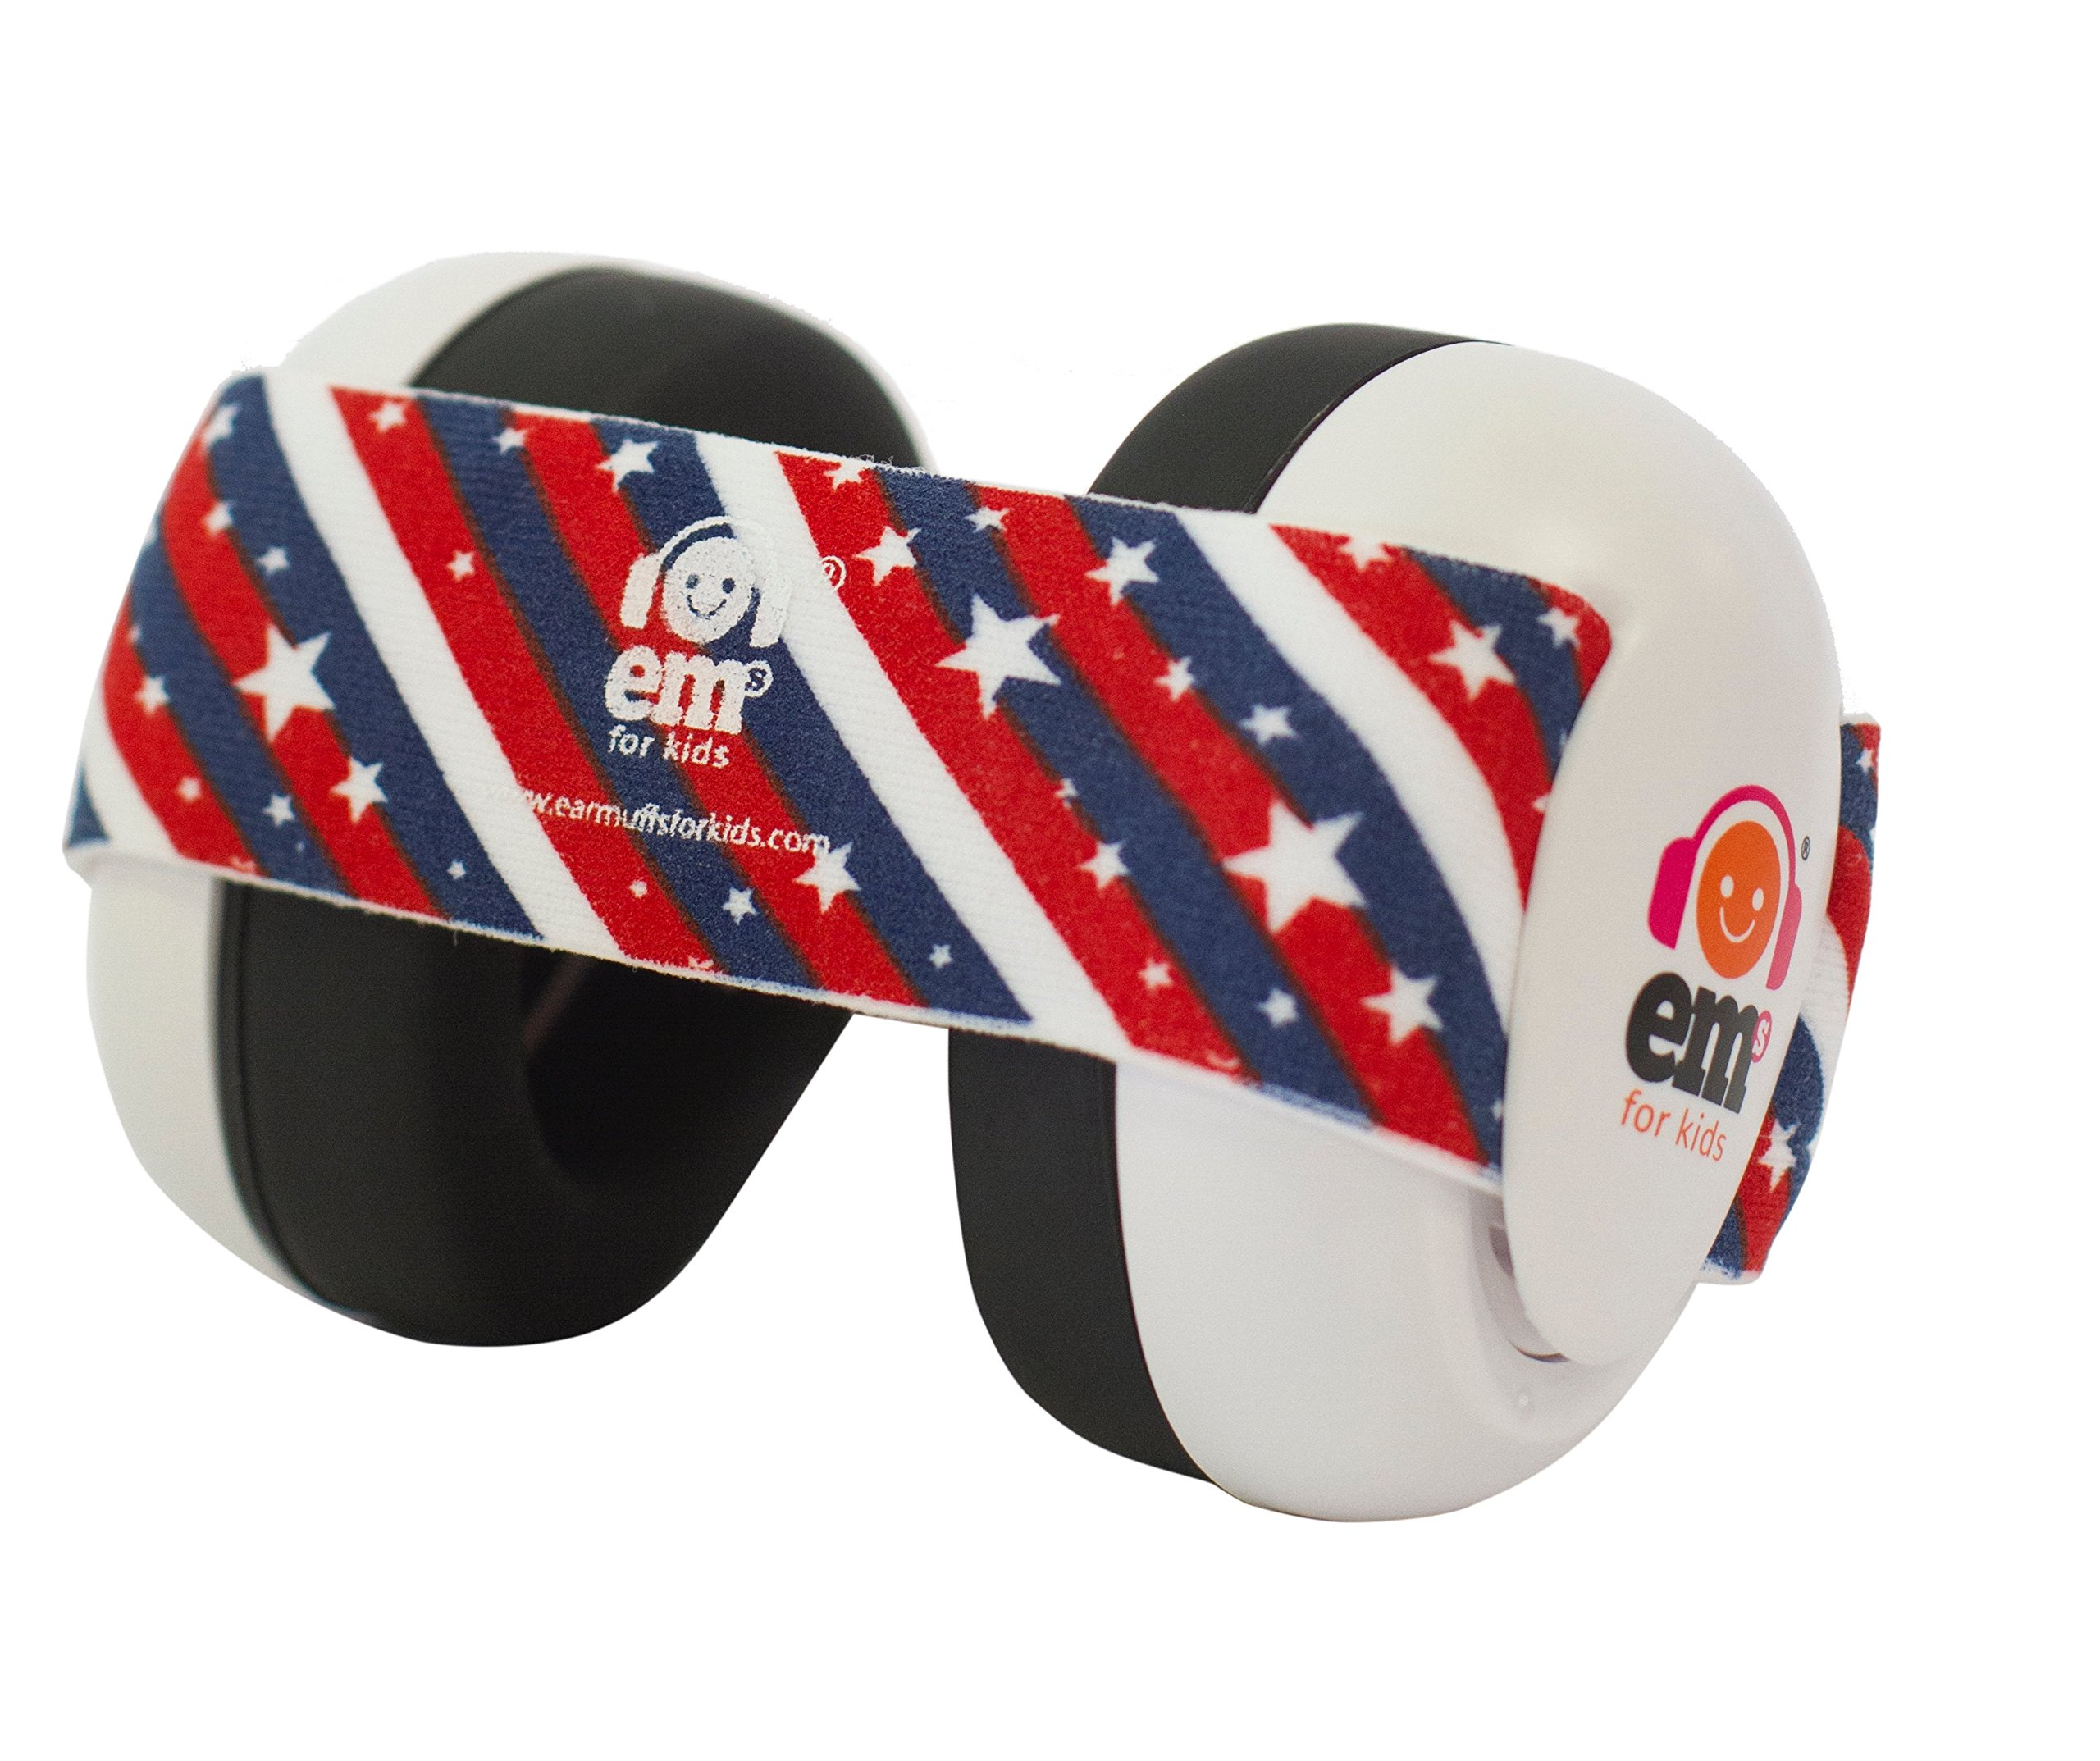 EMS for Kids Baby Earmuffs - White with Stars n Stripes. The Original Baby Earmuffs, Now Made in The USA. Great for Concerts, Music Festivals, Planes, NASCAR, Motor Racing, Power Tools and More! by Ems for Kids (Image #1)